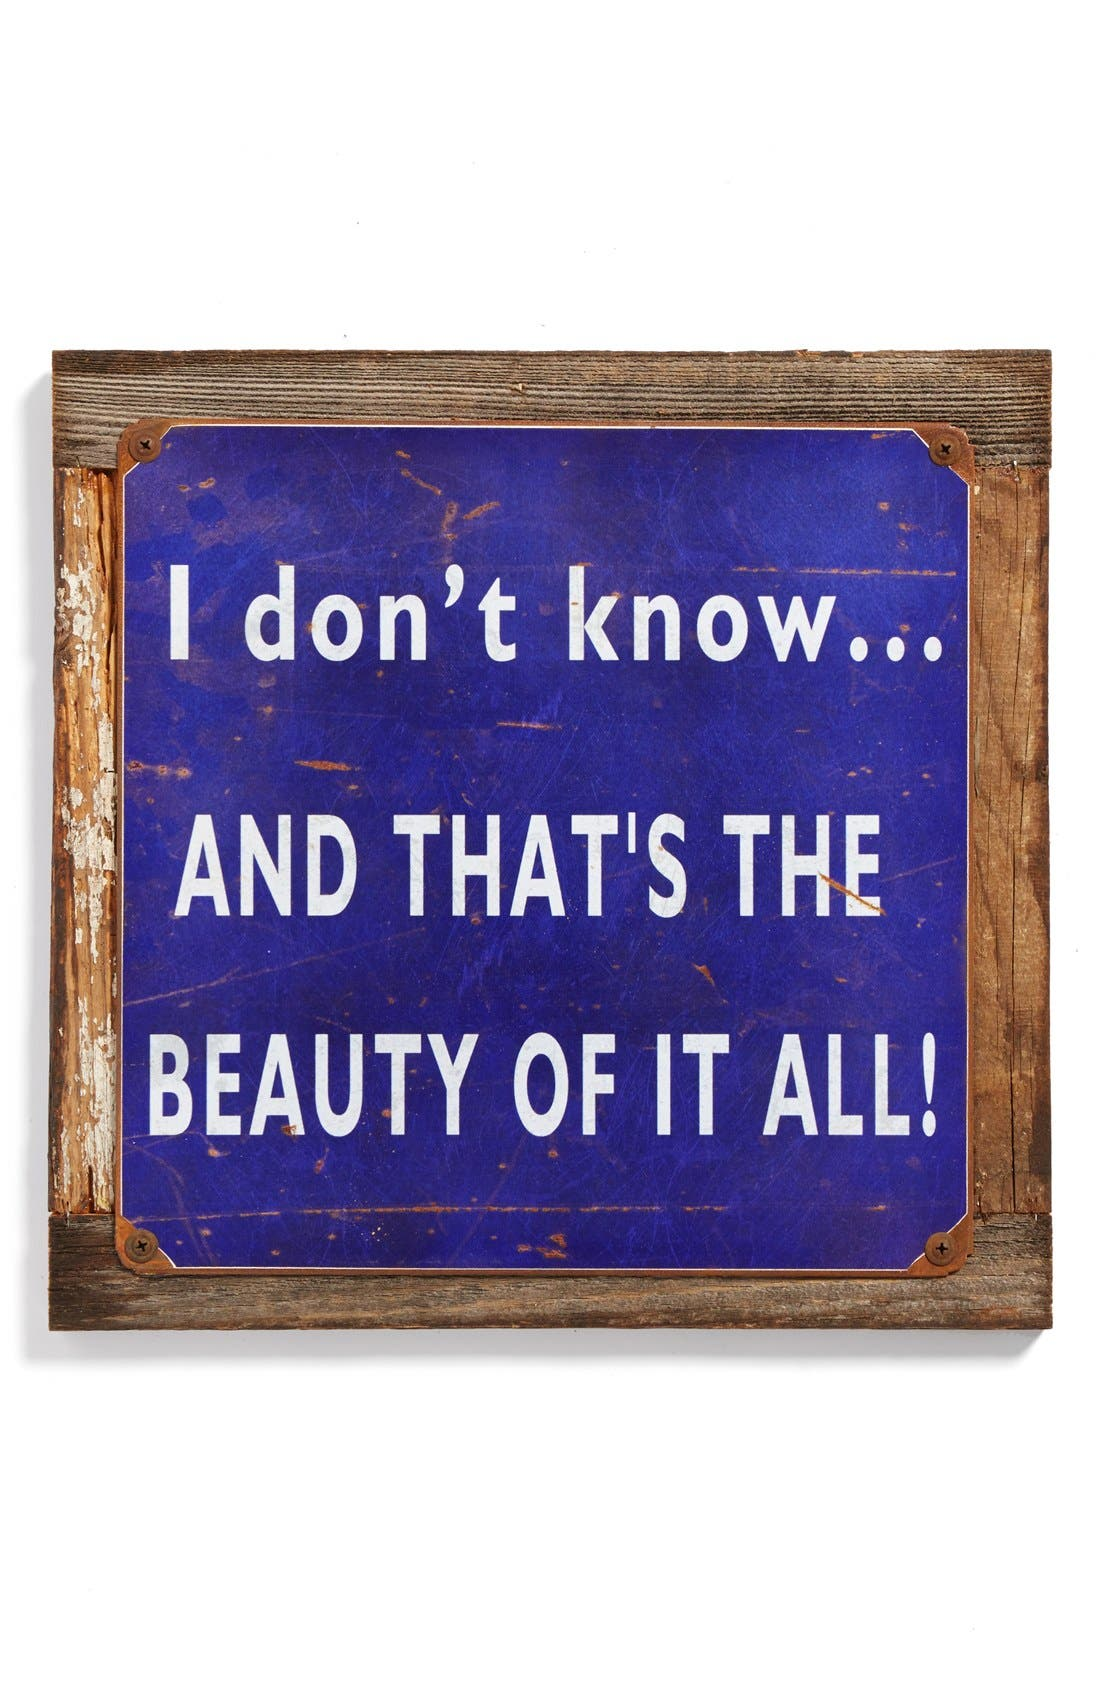 Alternate Image 1 Selected - Poncho & Goldstein 'I Don't Know … Beauty' Sign